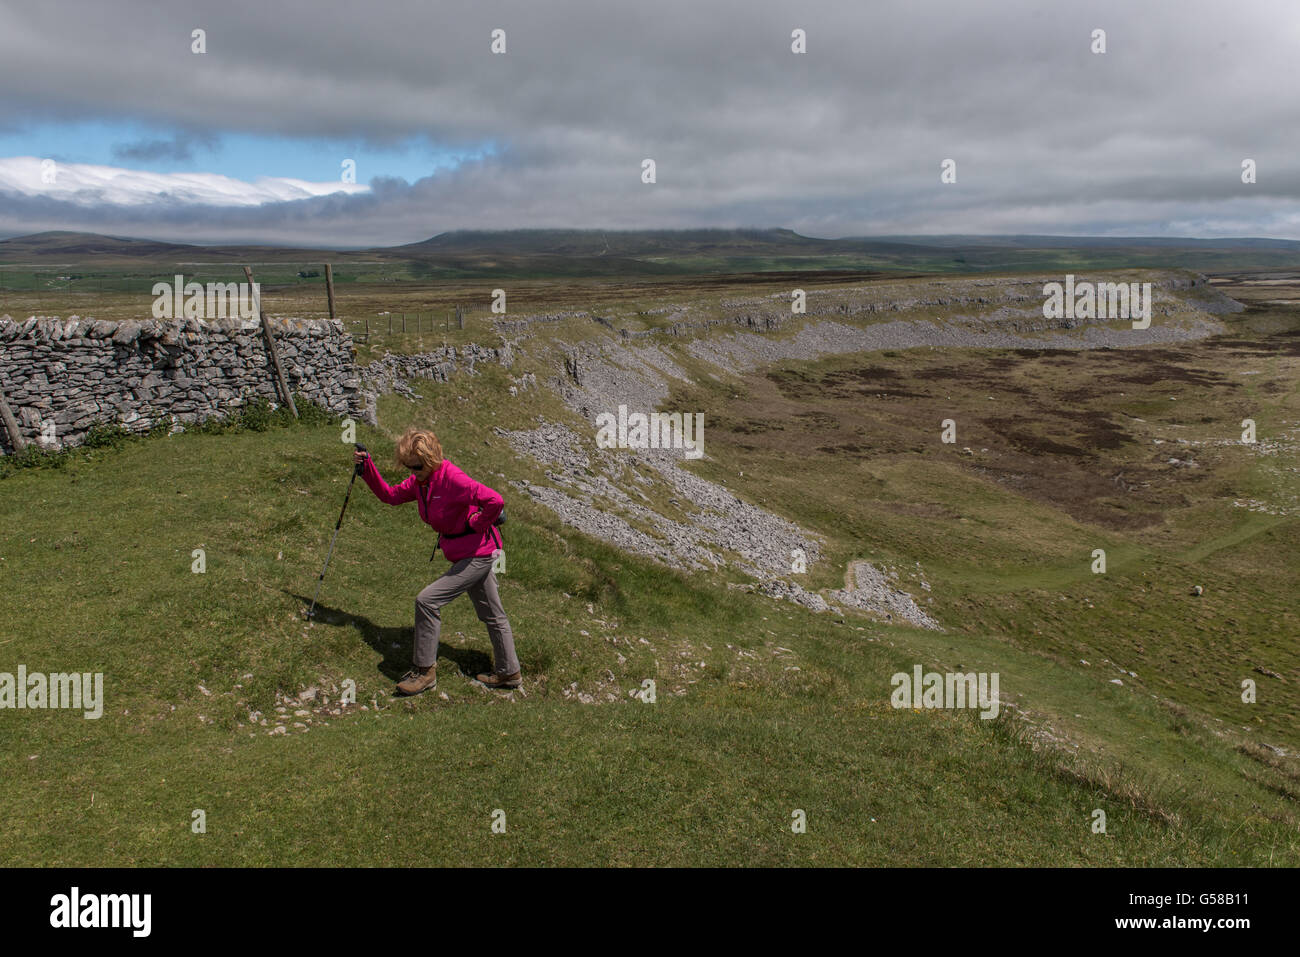 Thieves Moss in The Yorkshire Dales - Stock Image